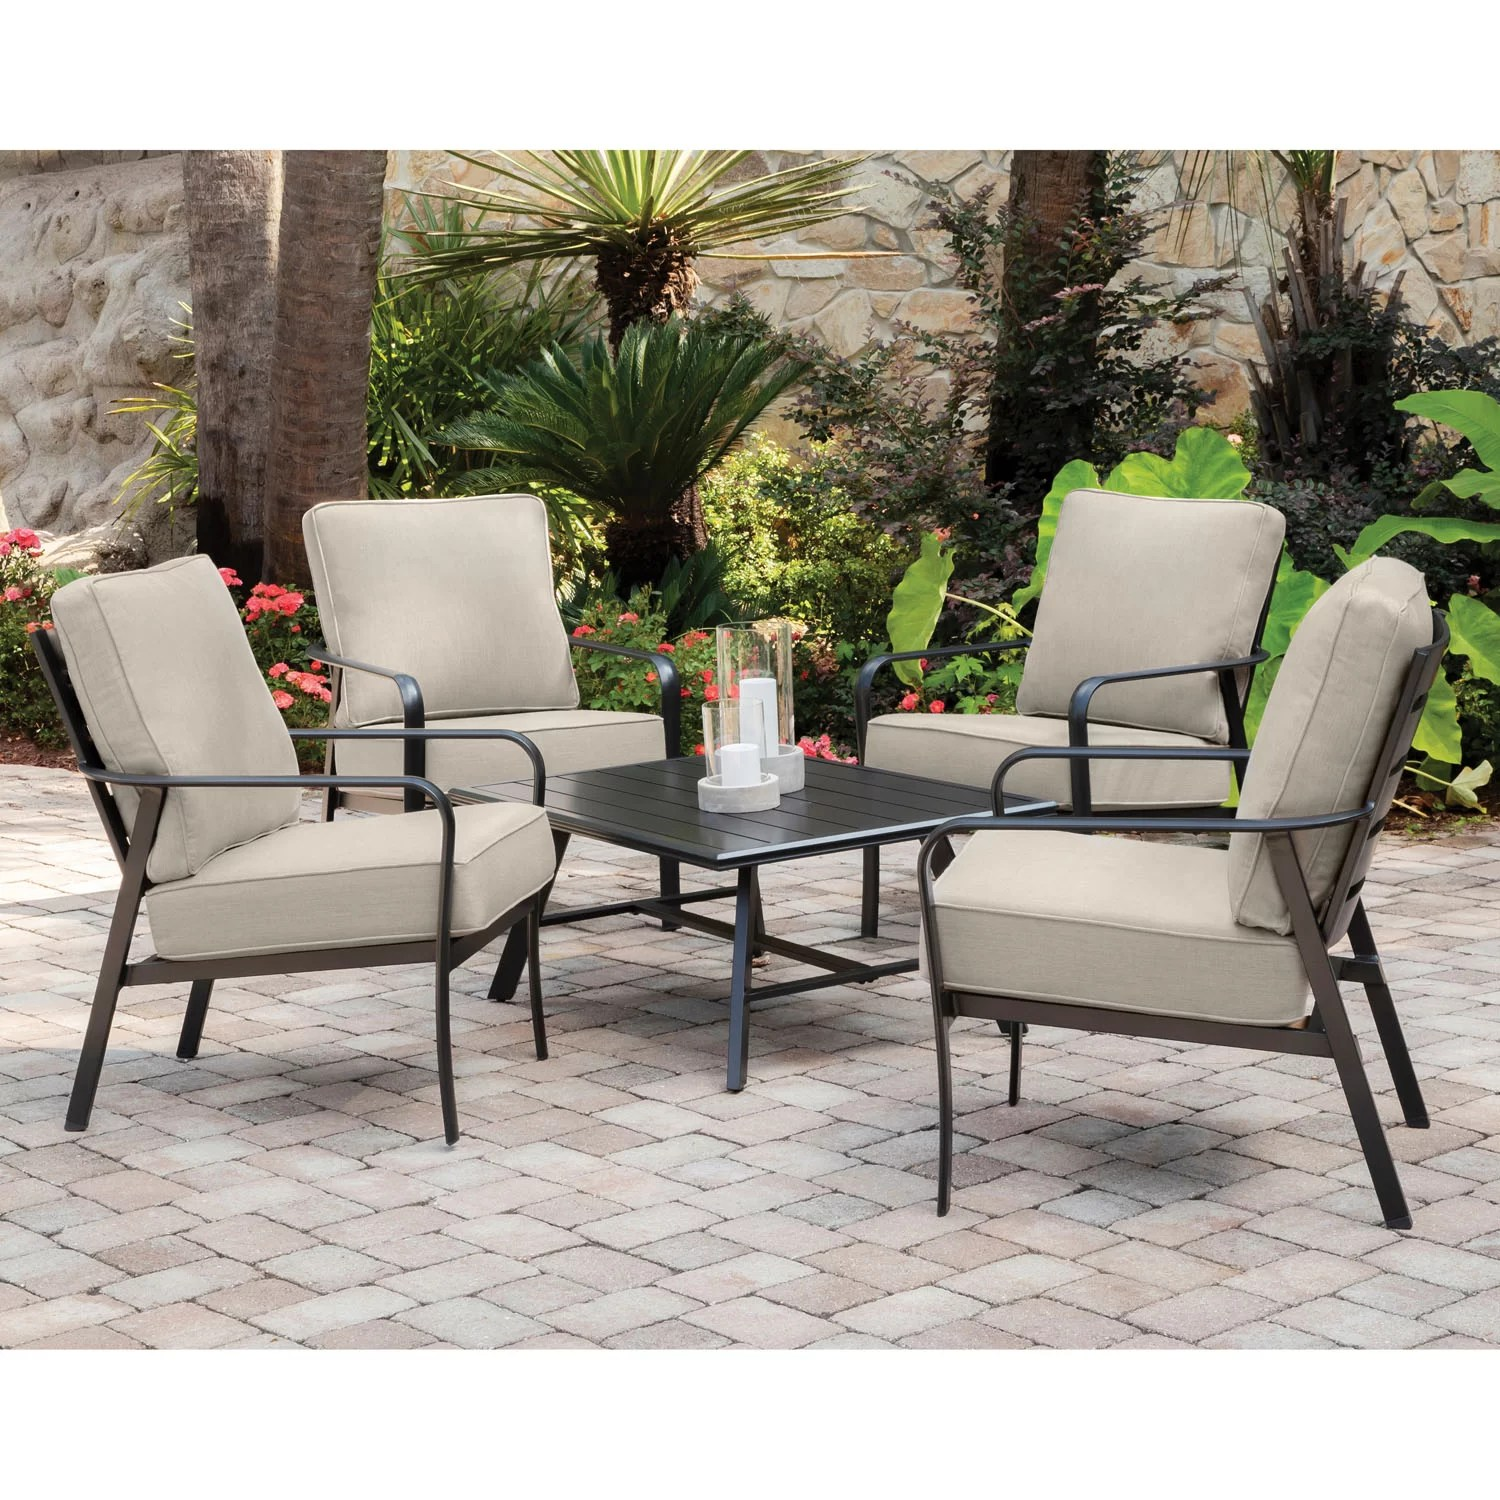 https www wayfair com outdoor pdp gracie oaks colson 5 piece commercial grade patio seating set with 4 cushioned club chairs and an aluminum slat top coffee table w001559833 html